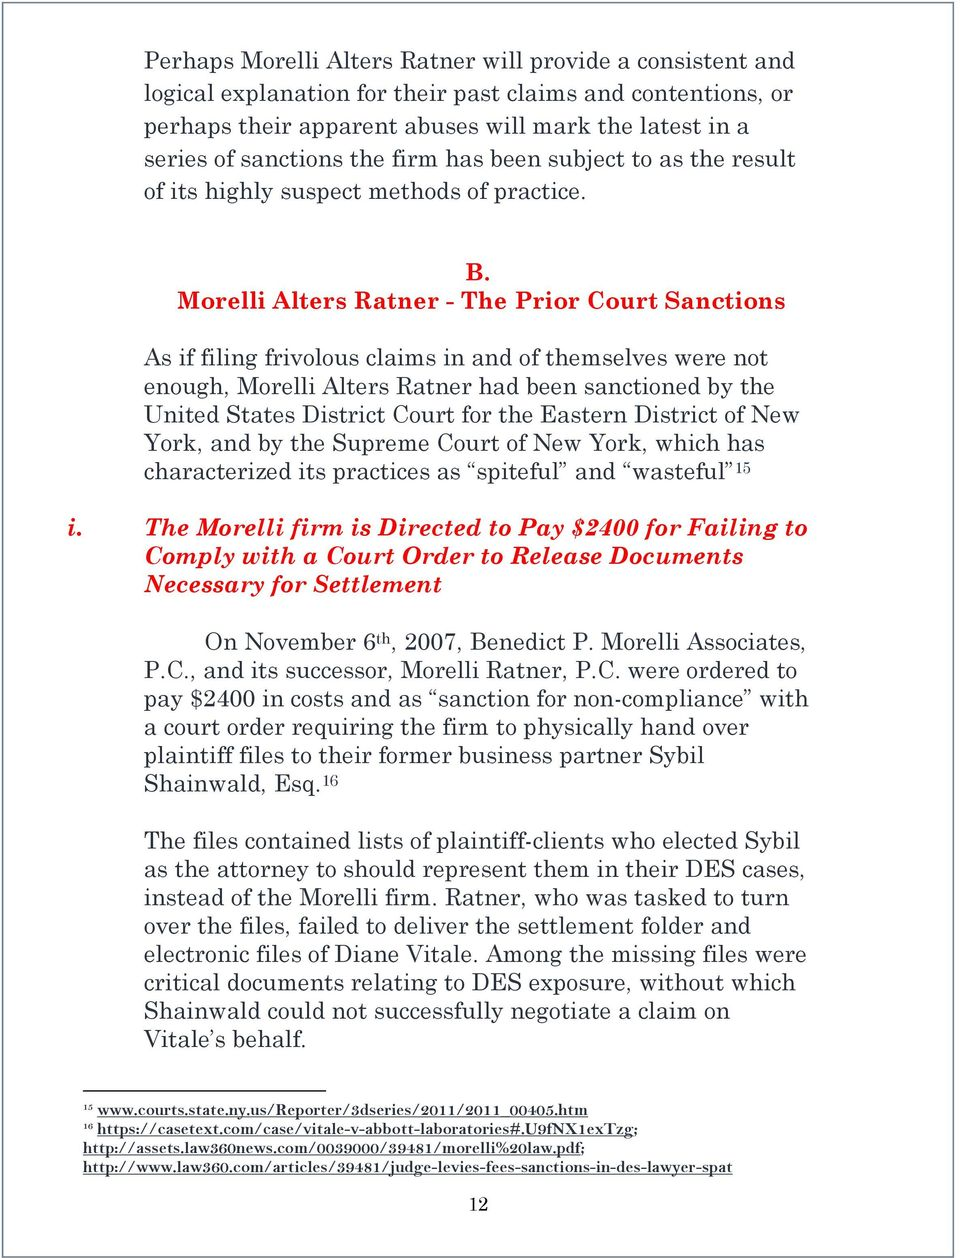 Morelli Alters Ratner - The Prior Court Sanctions As if filing frivolous claims in and of themselves were not enough, Morelli Alters Ratner had been sanctioned by the United States District Court for